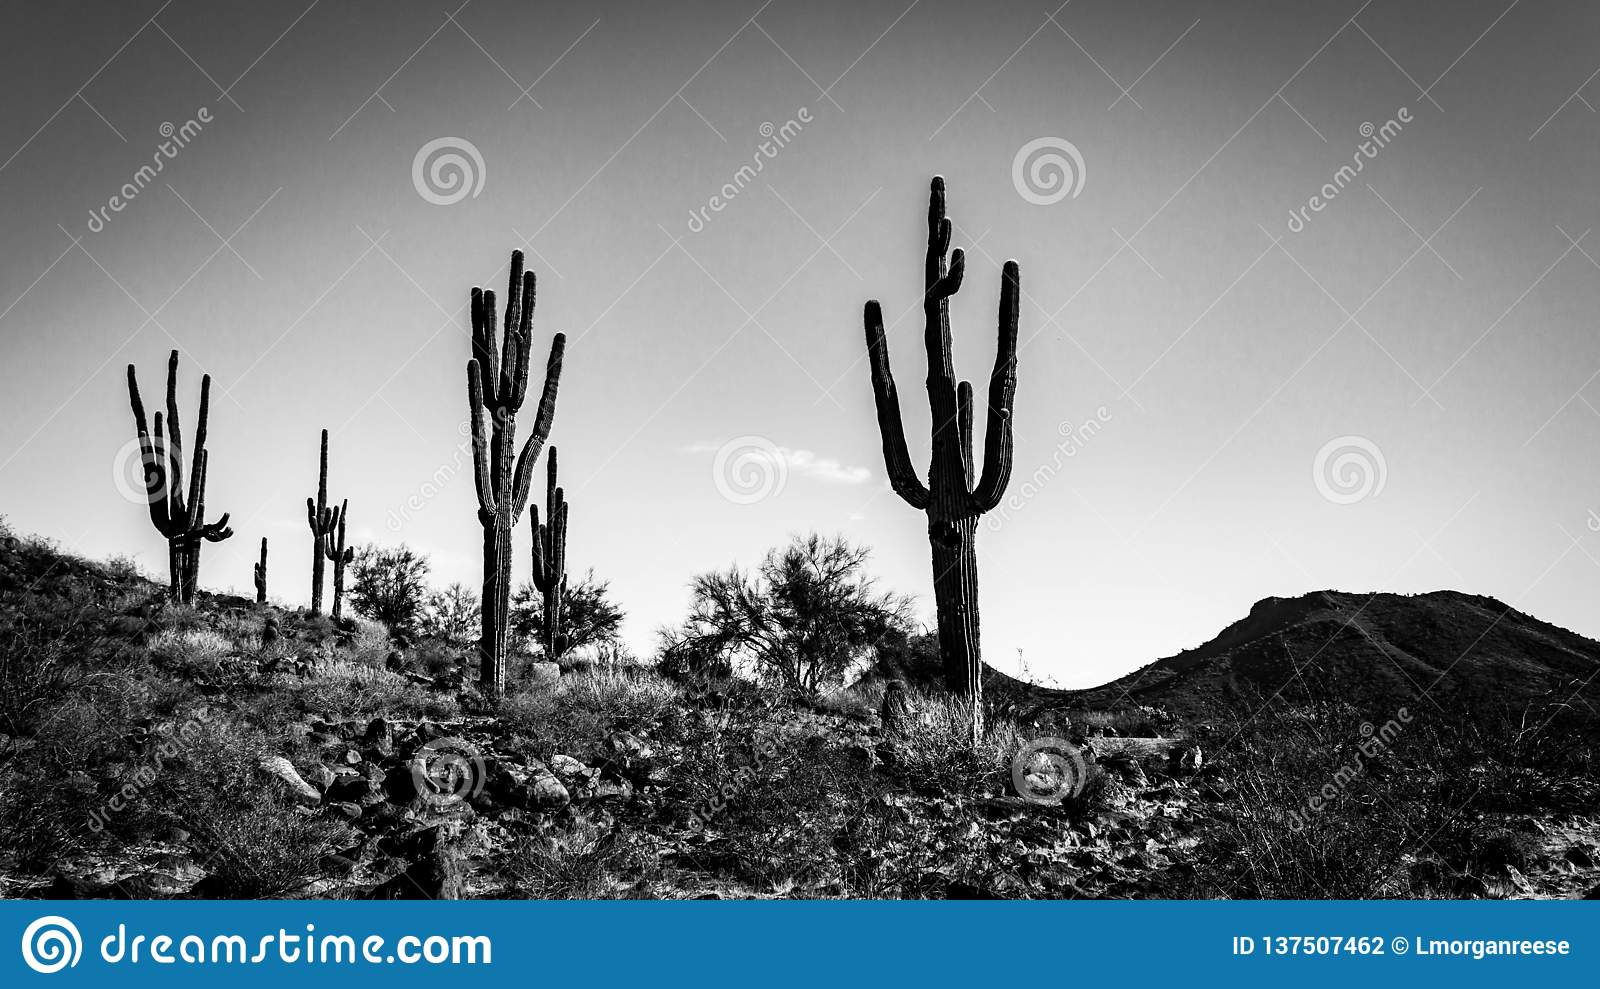 A black and white photo of saguaro cacti on the side of a hill in the Sonoran Desert.